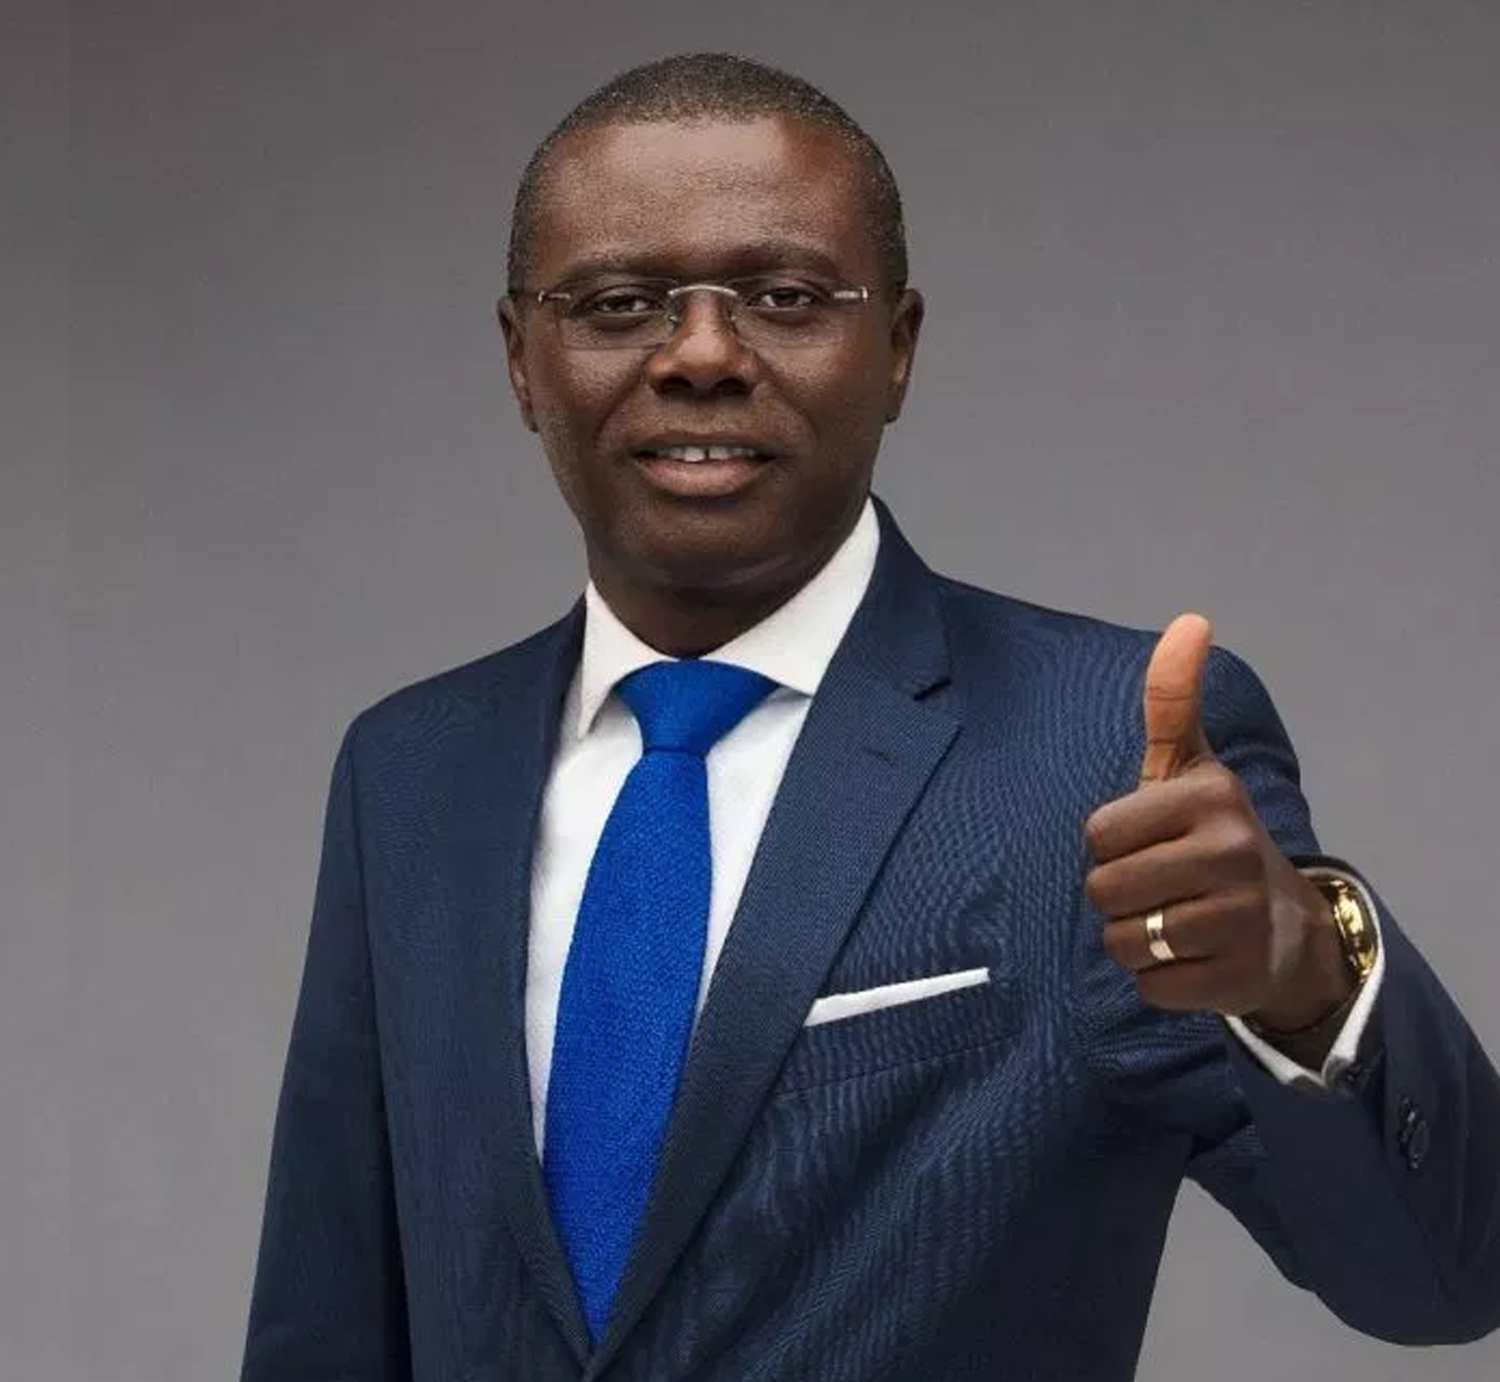 Sanwo-Olu presents year 2020 budget, Friday